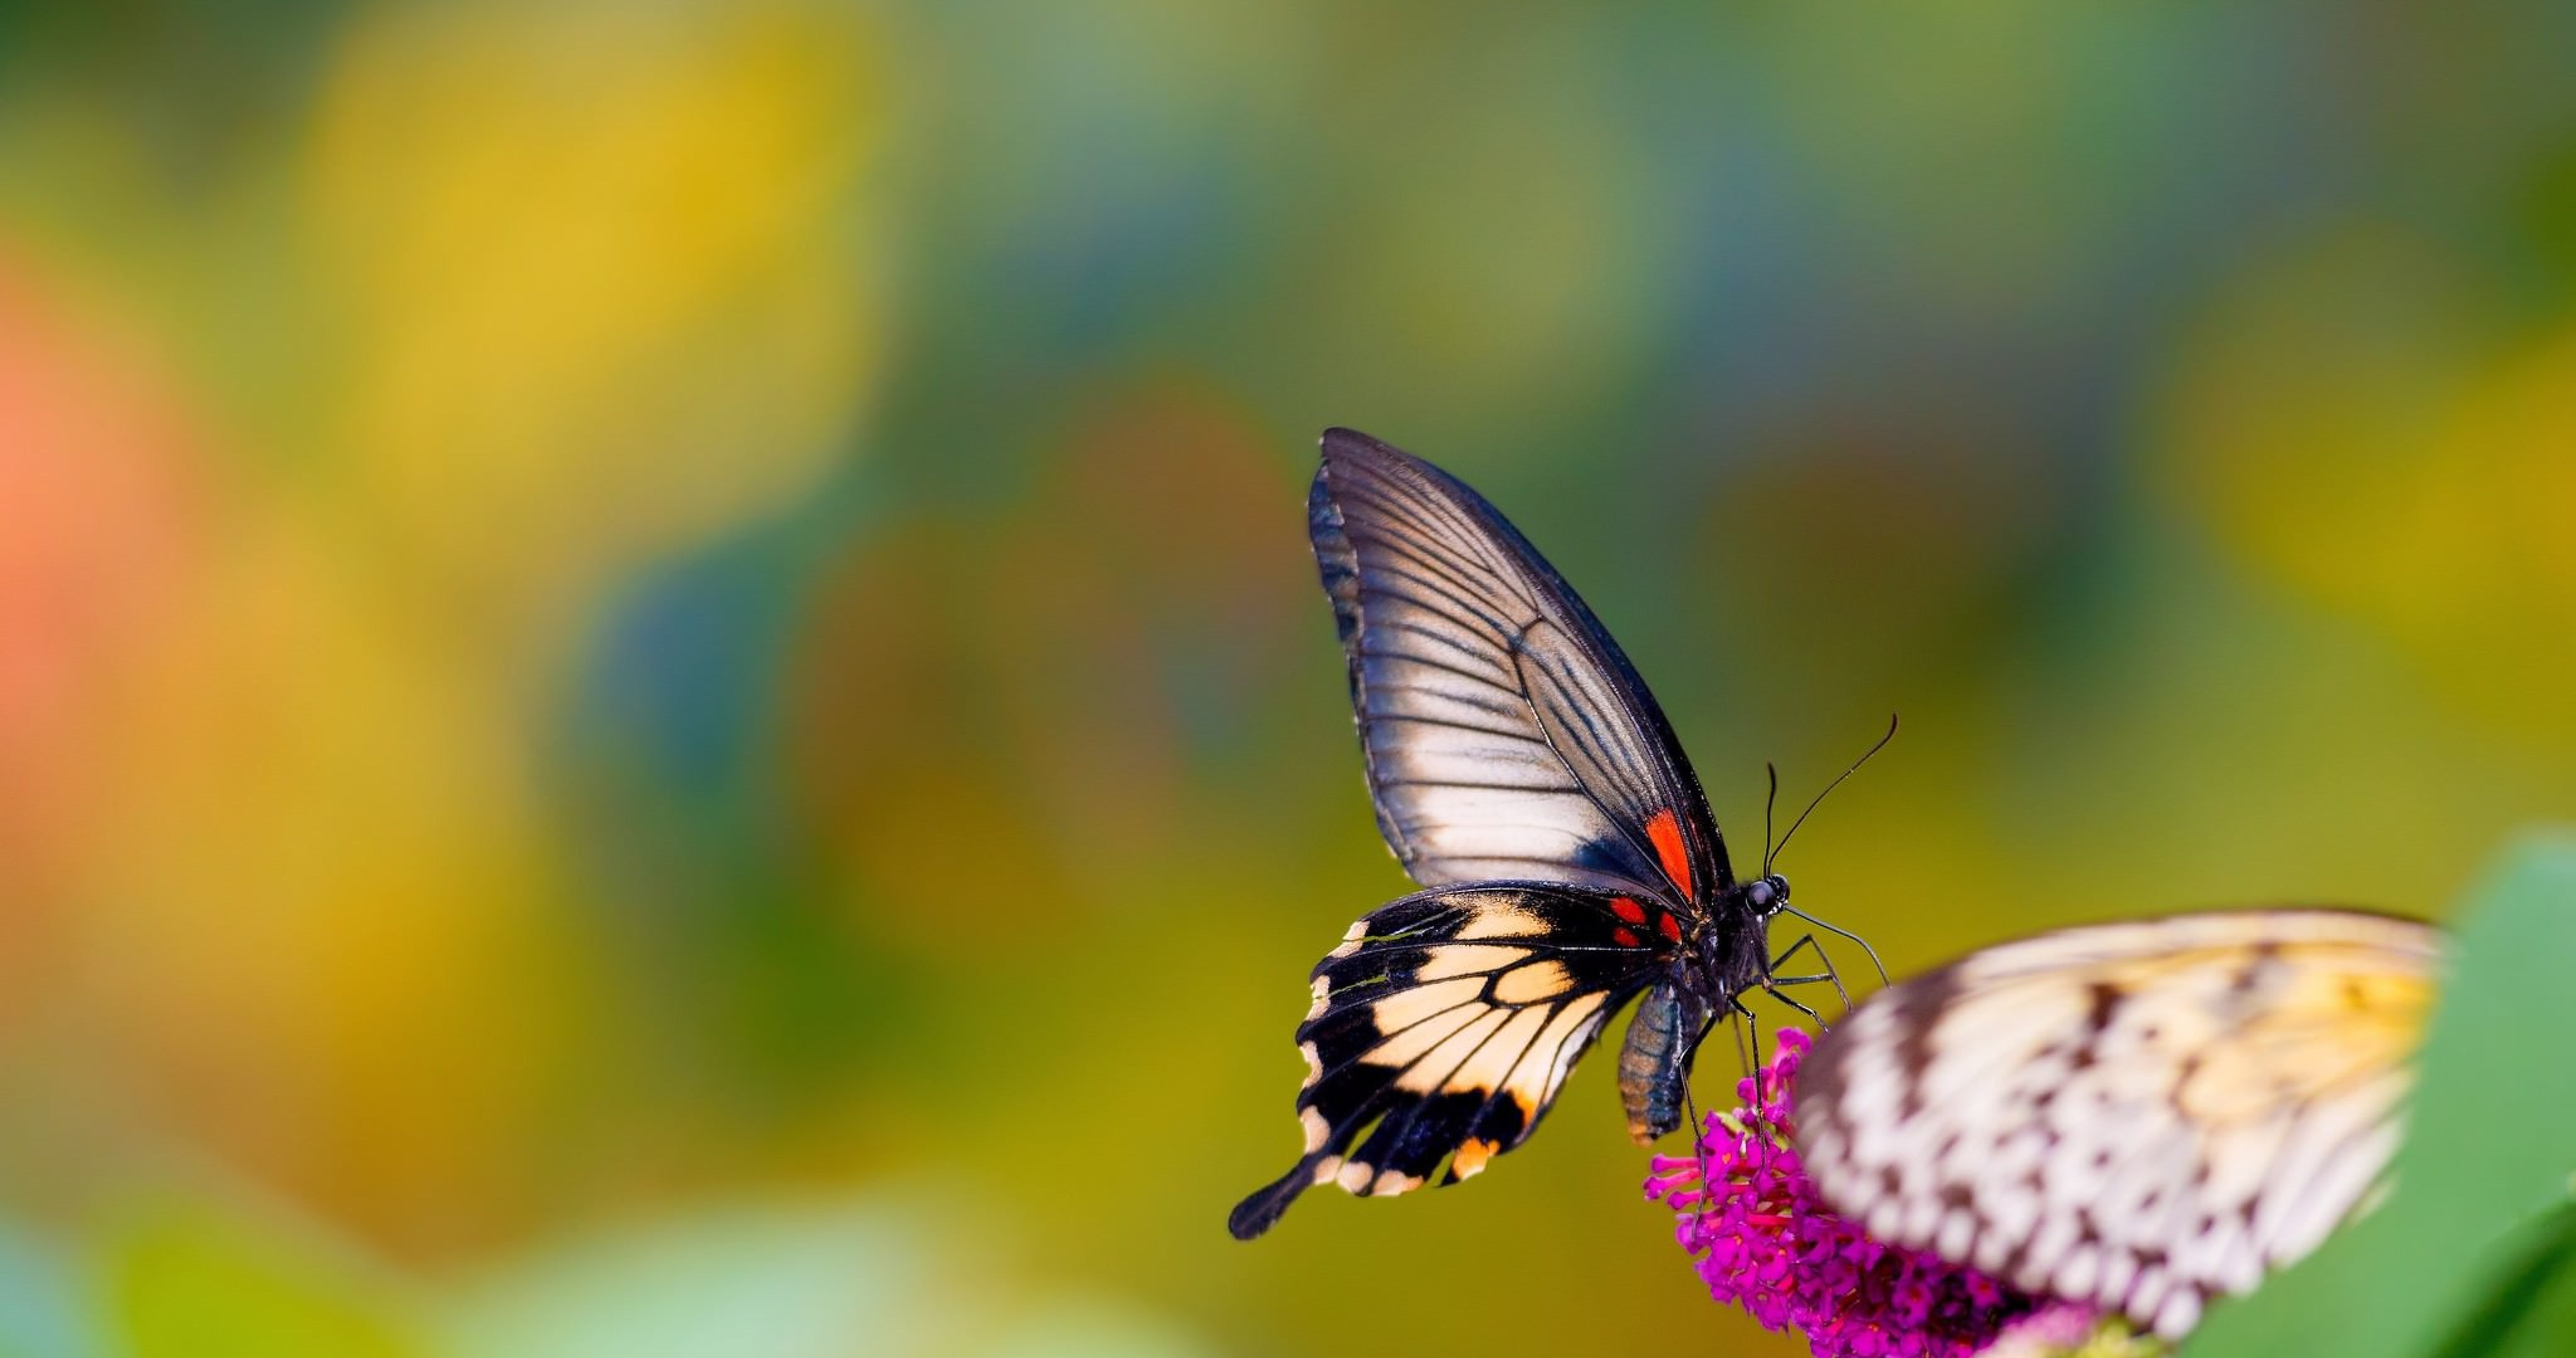 Butterfly In Nature 4k Ultra Hd Wallpaper High Quality Walls